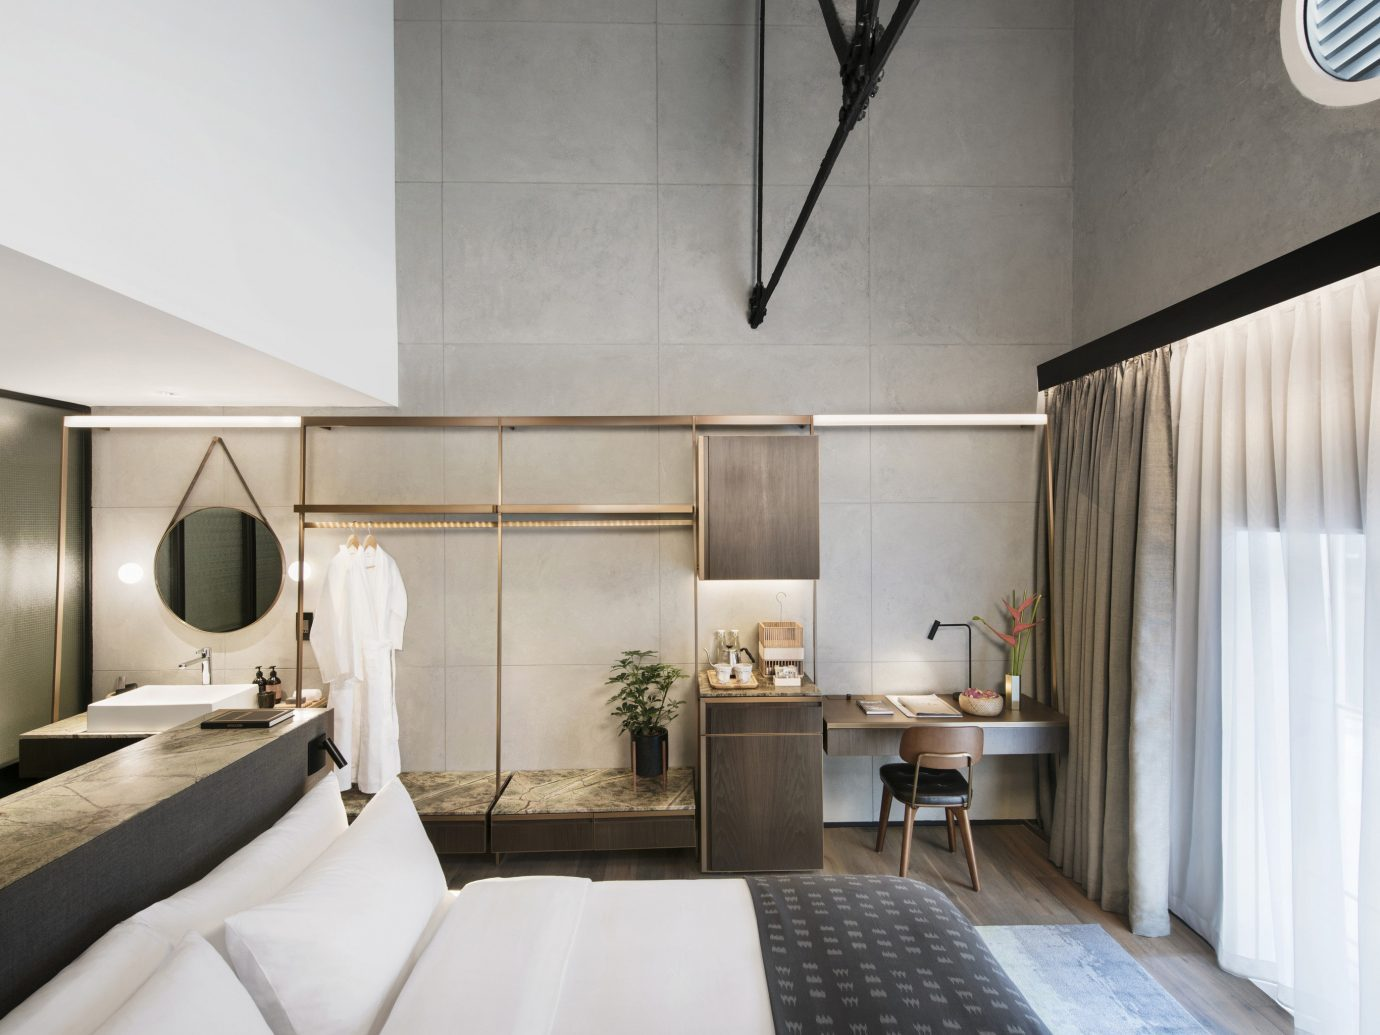 Warehouse Hotel, Singapore